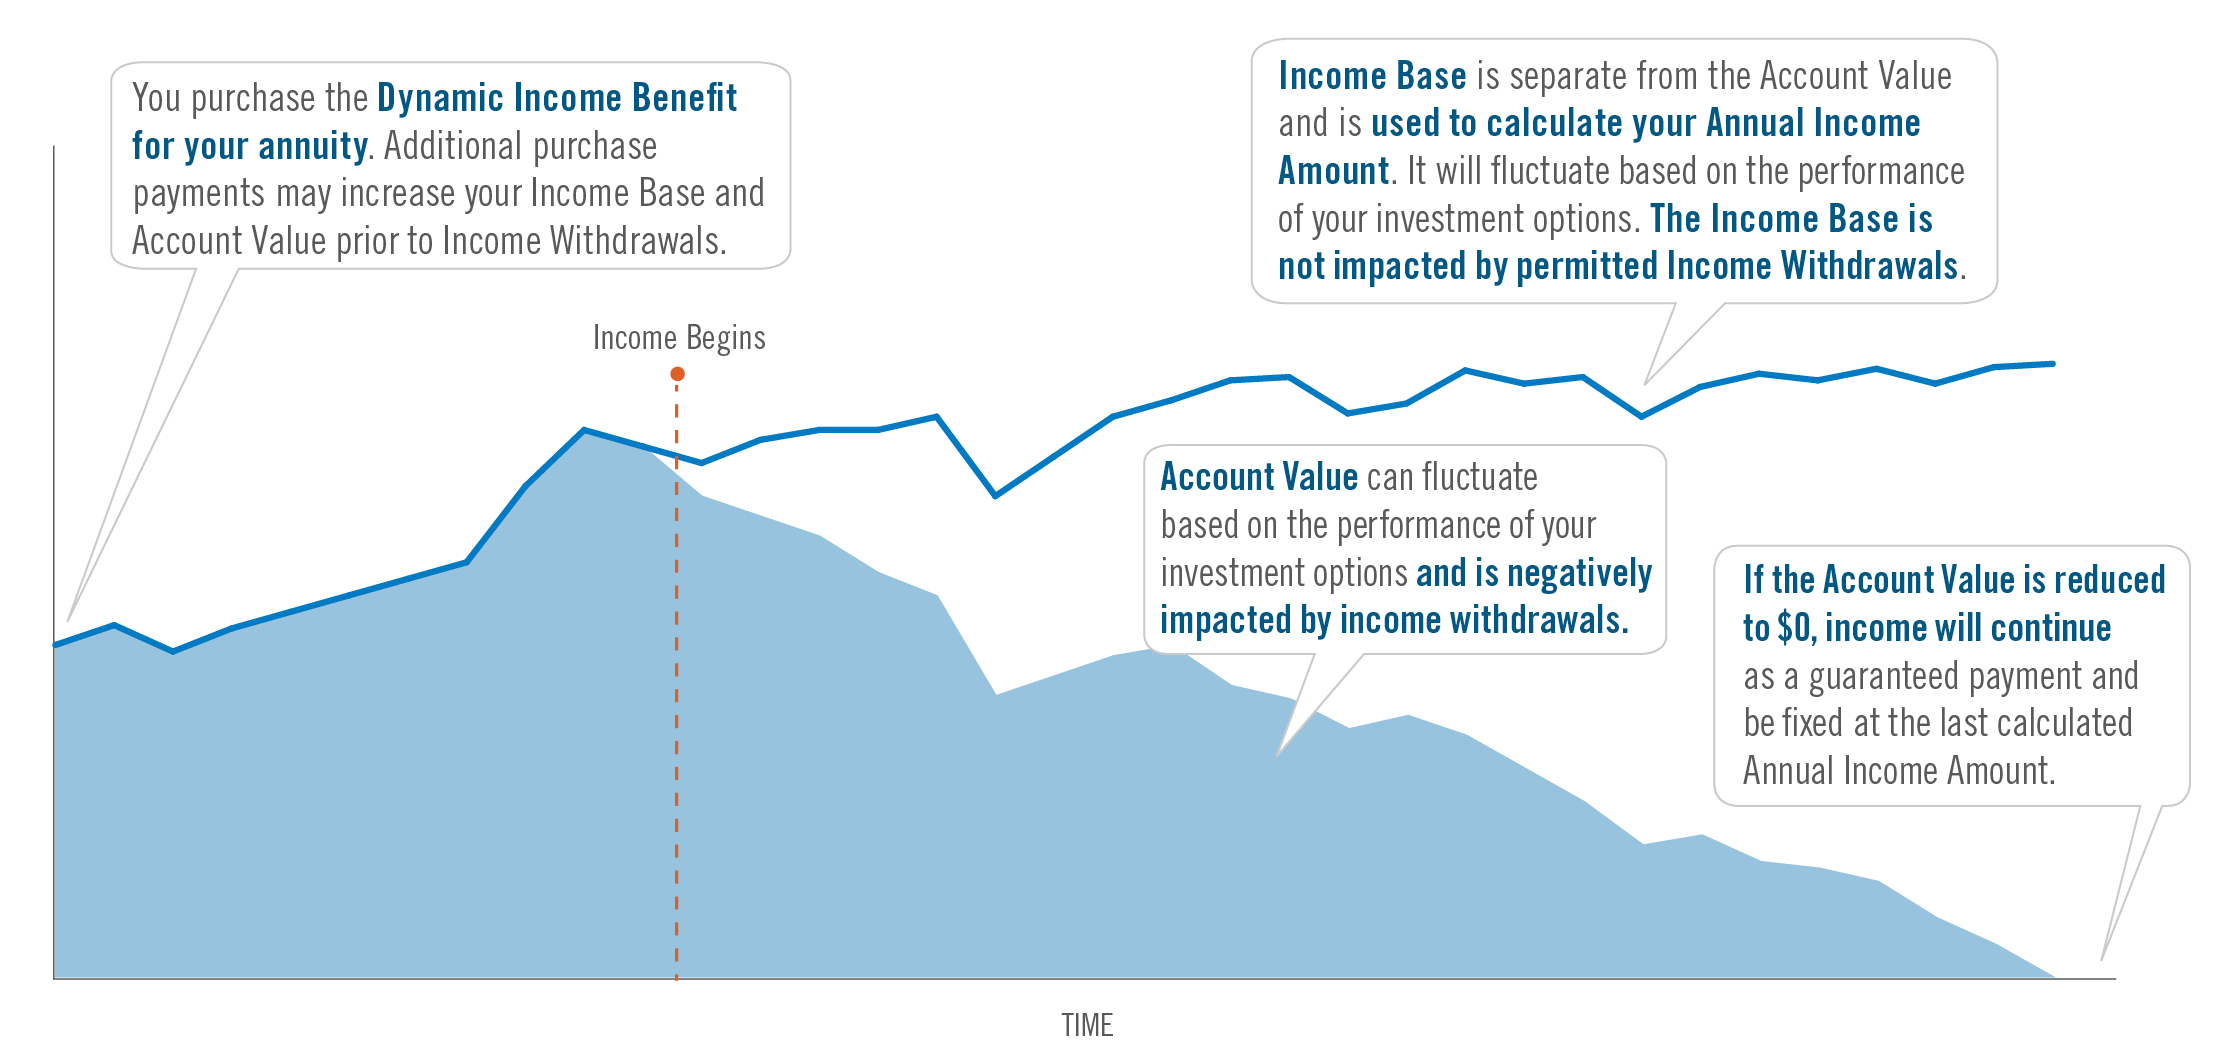 Hypothetical illustration showing how money lasts longer when taking income assuming Account Value and Income Base are equal and no withdrawals are taken at start of income withdrawal.